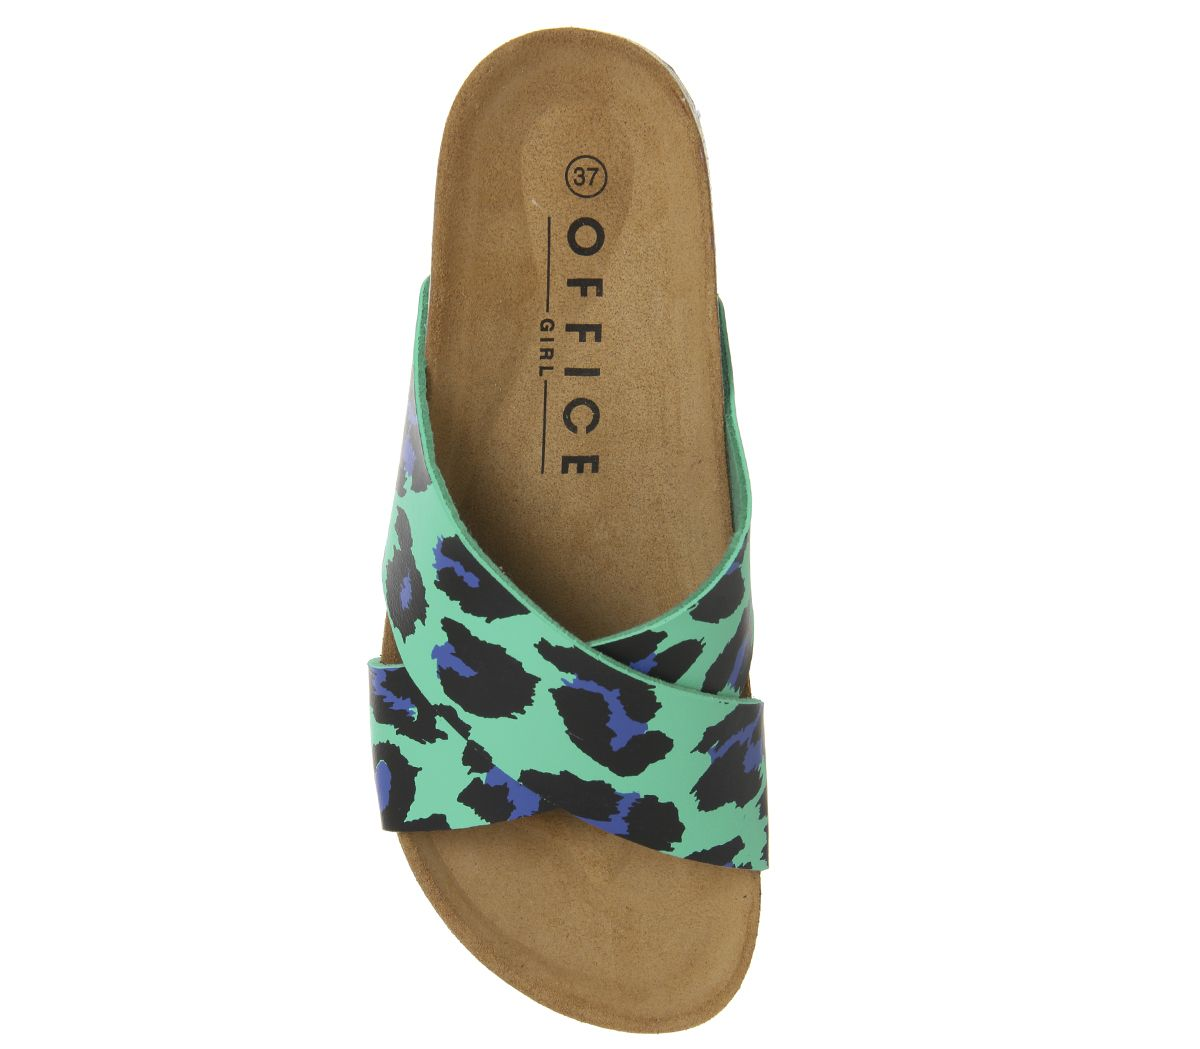 f31eed1eb04a Hoxton 2 Sandals. Double tap to zoom into the image. Office, Hoxton 2  Sandals, Green Leopard ...